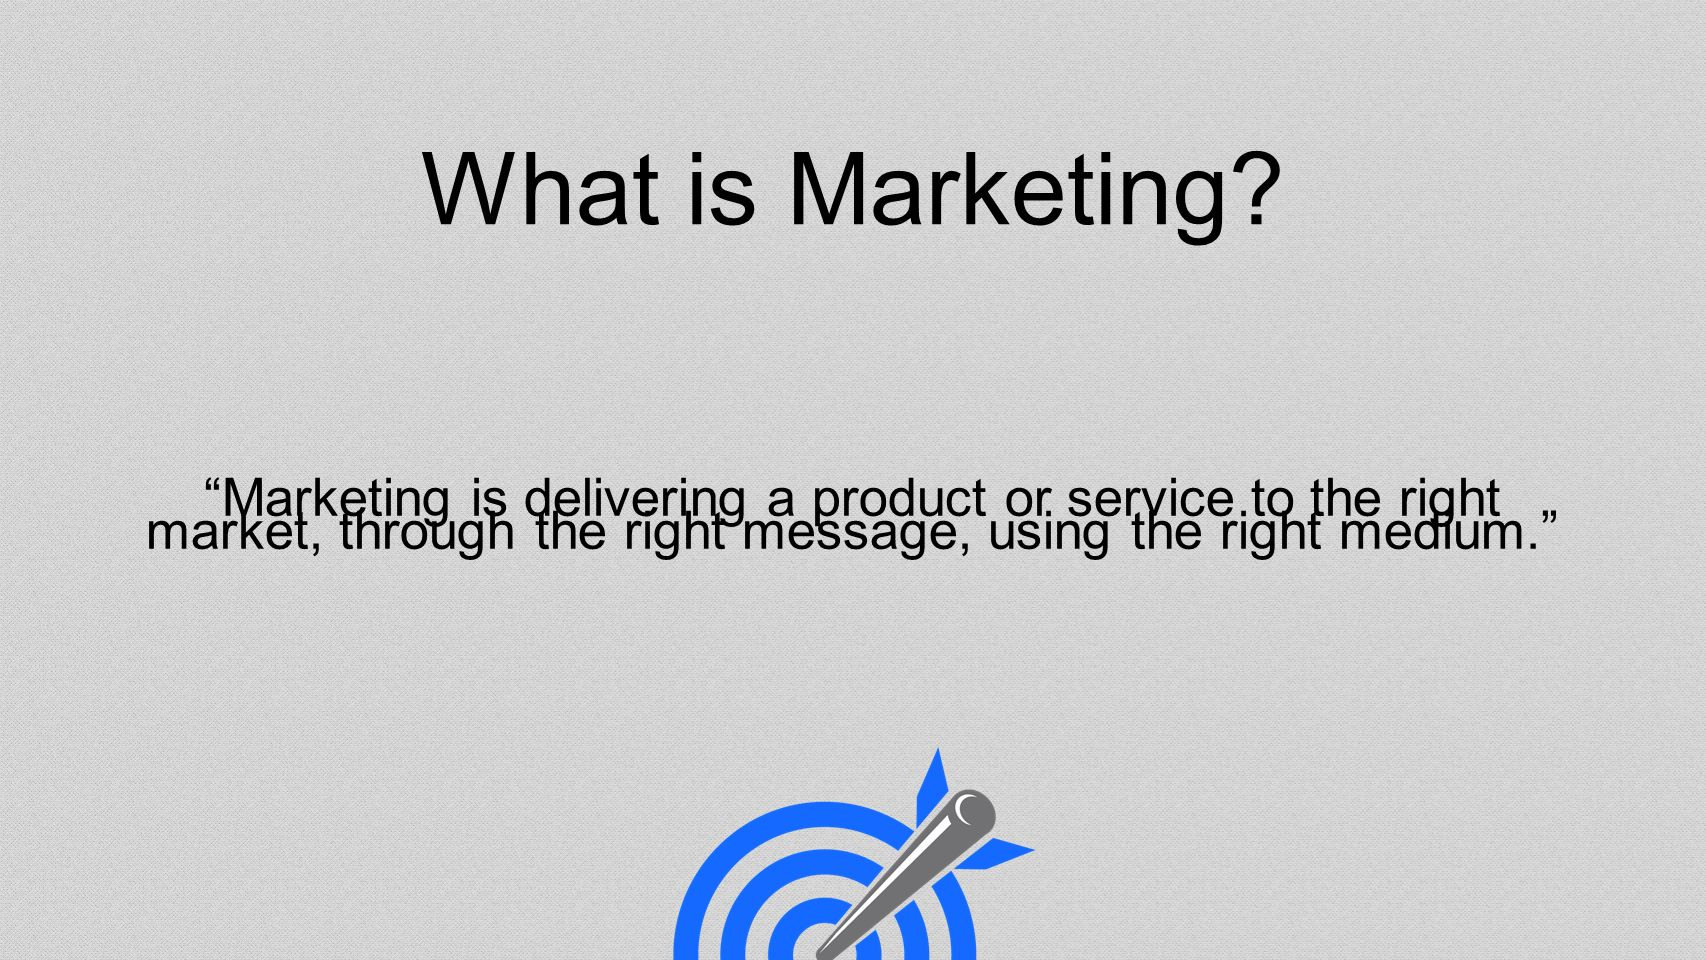 Marketing is delivering a product or service to the right market, through the right message, using the right medium.